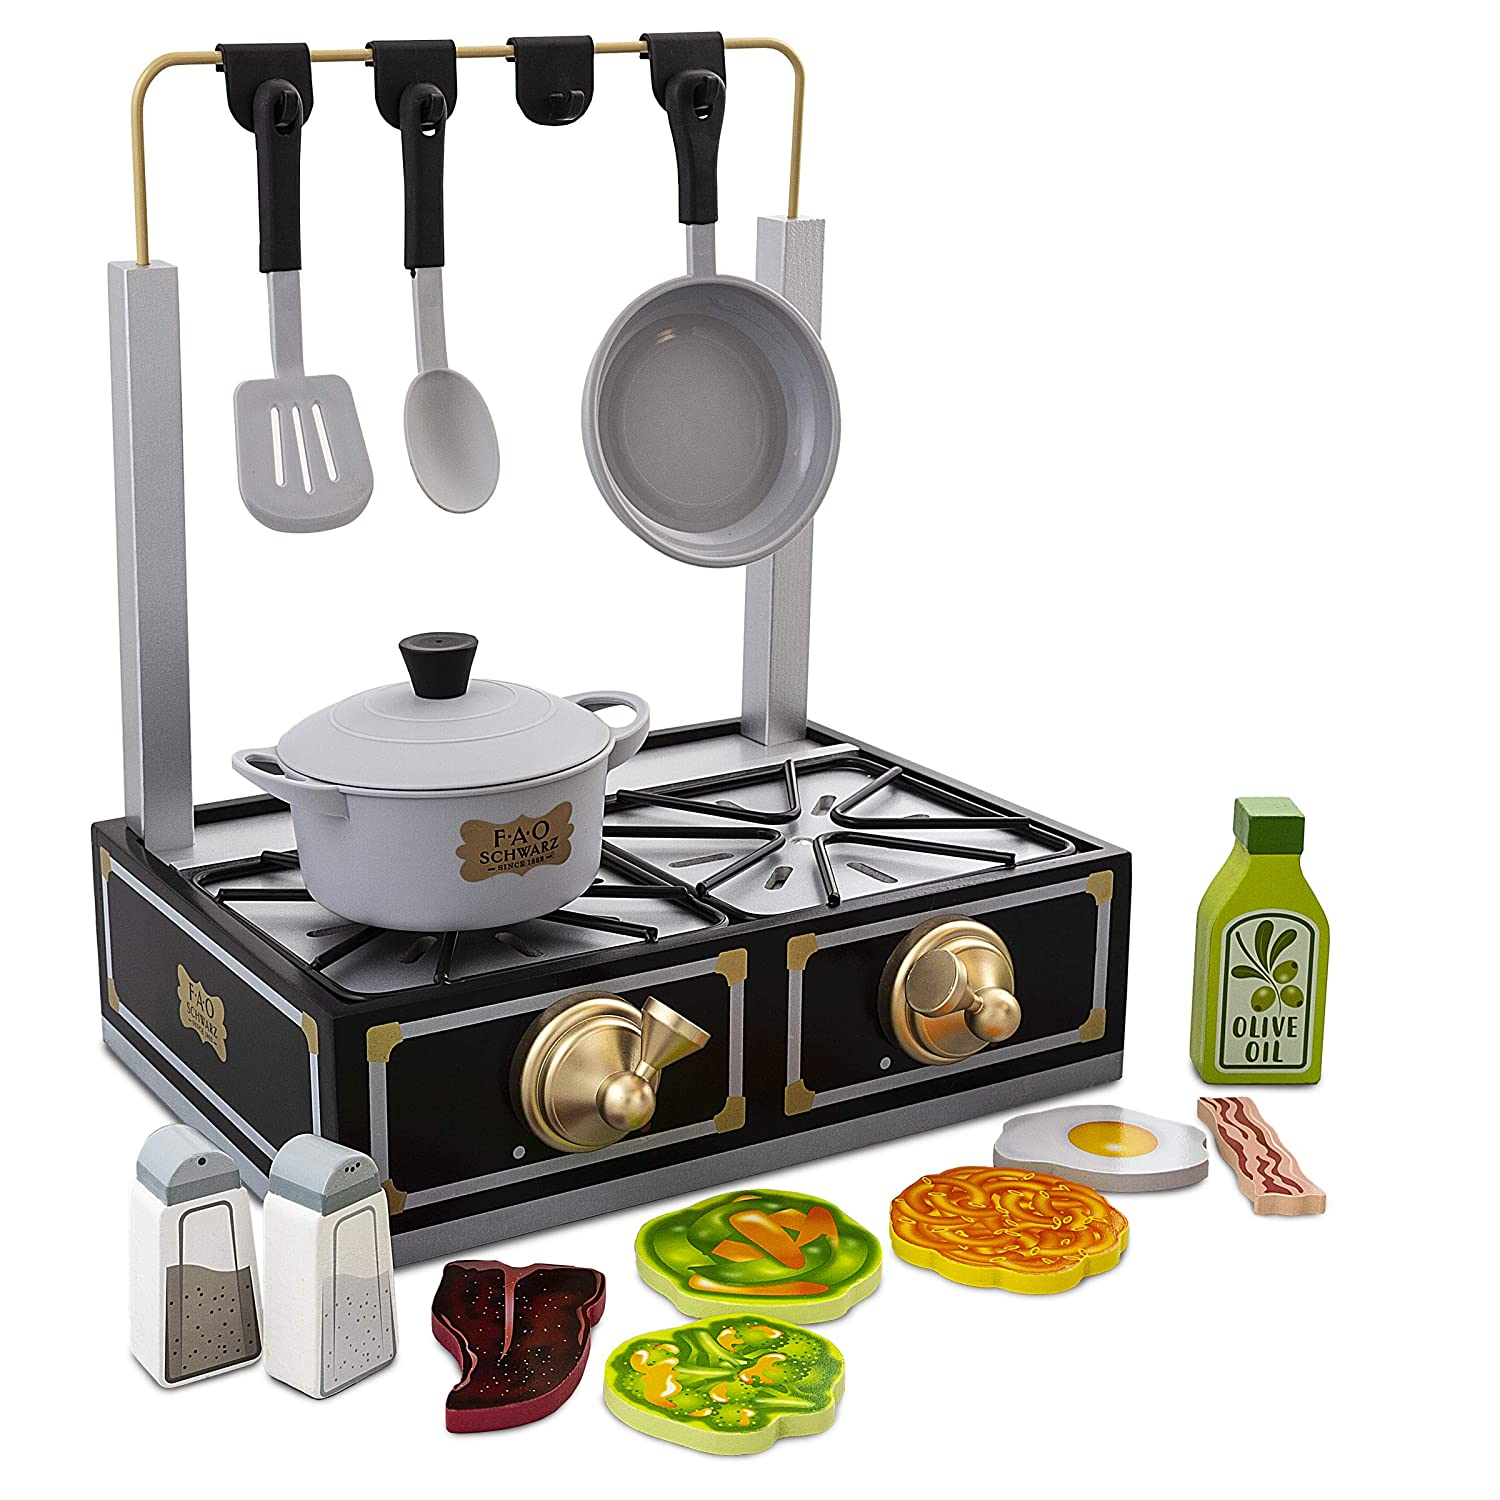 FAO Schwarz 1005991 Tabletop Stove Playset Includes Pot & Pan Prop, Spatula & Spoon Prop, & Assorted Foodpiece, Wood, Pack of 1